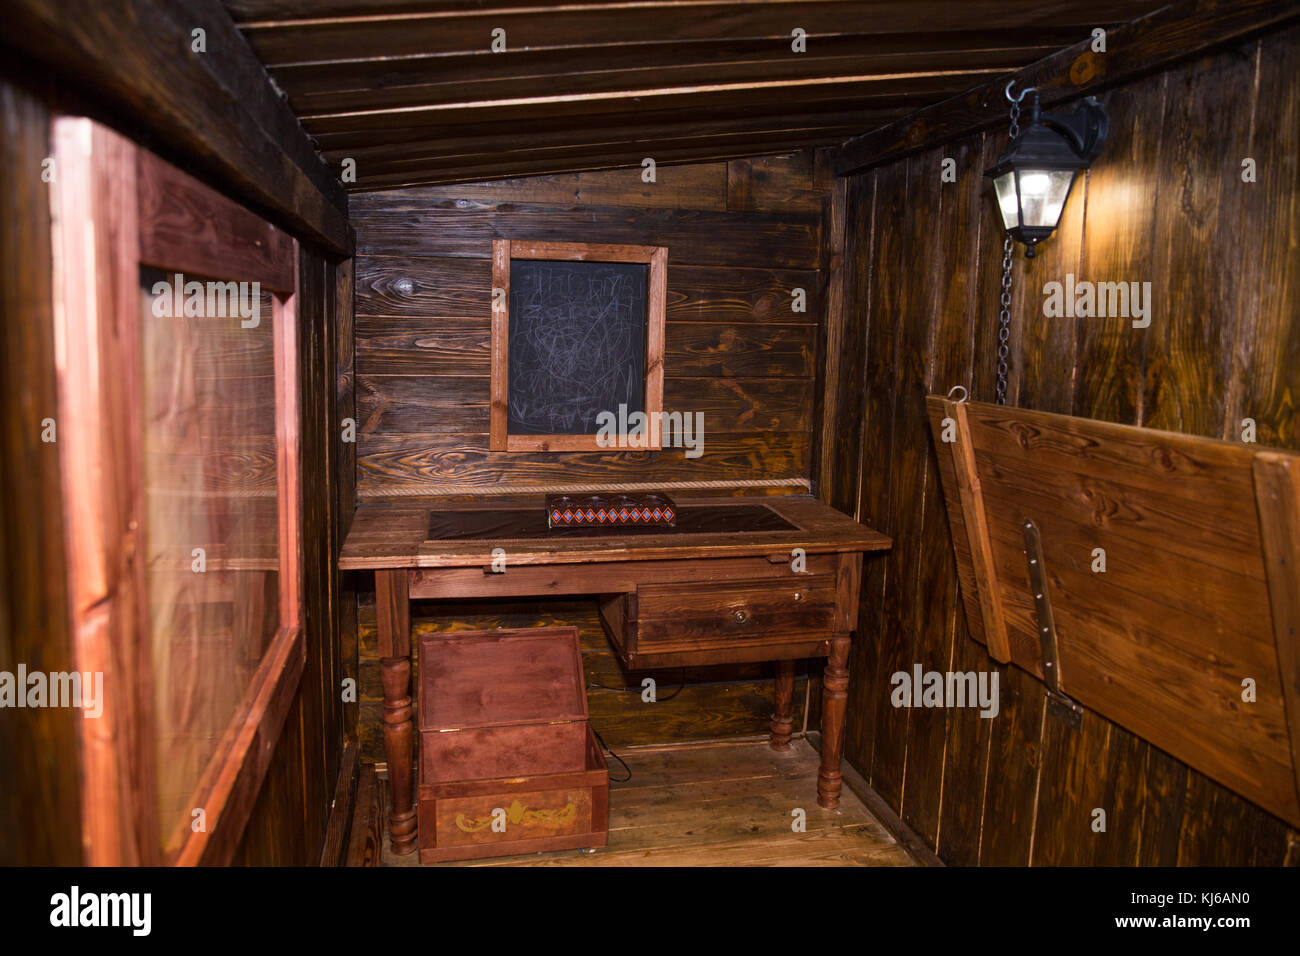 Interior Of Old Ship Cabin With Wooden Panels And Cords Lantern Chest Table Board